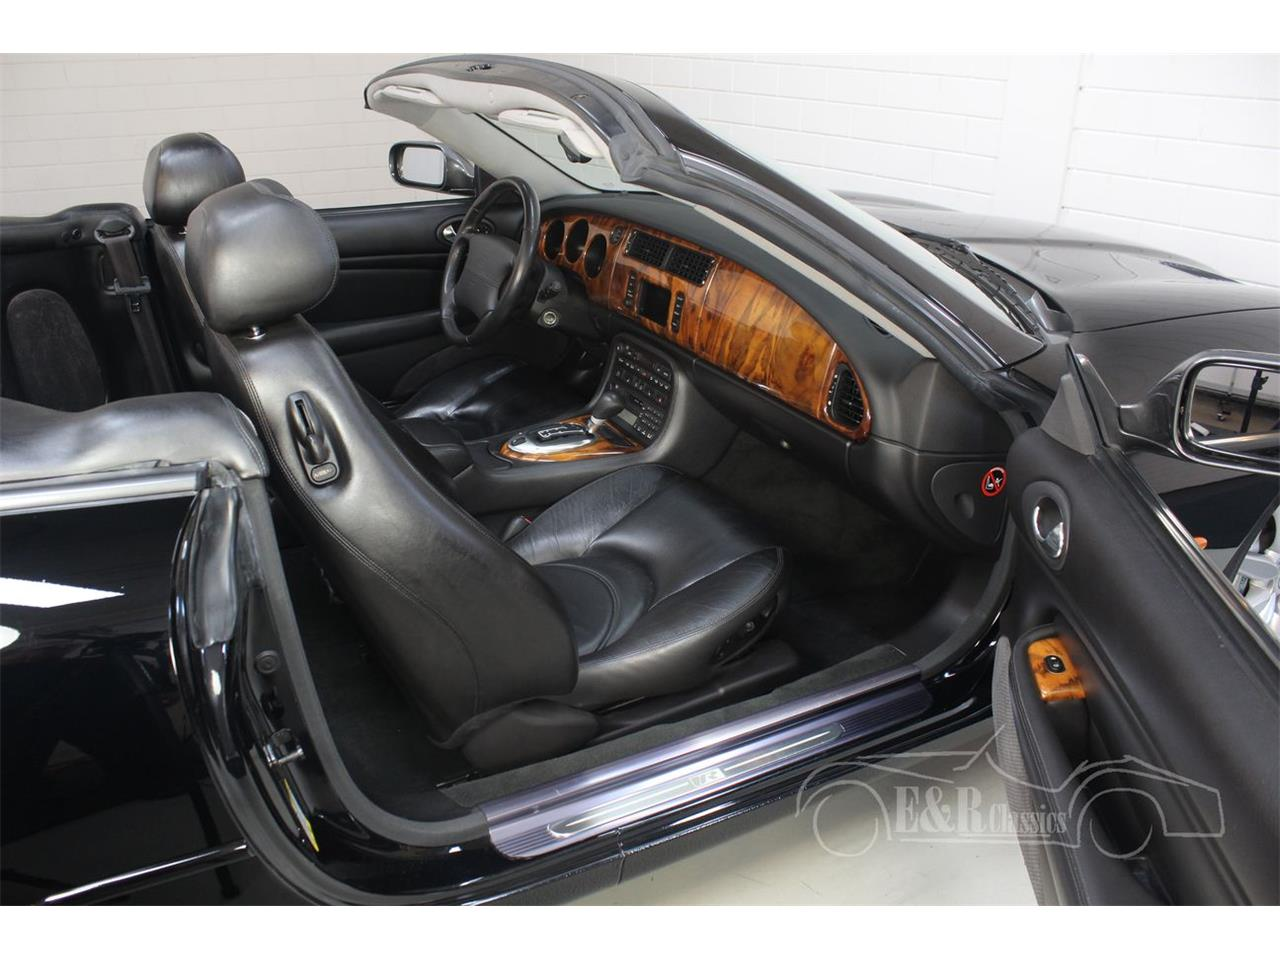 Large Picture of '03 Jaguar XKR located in Waalwijk noord brabant - $39,200.00 Offered by E & R Classics - Q3GE